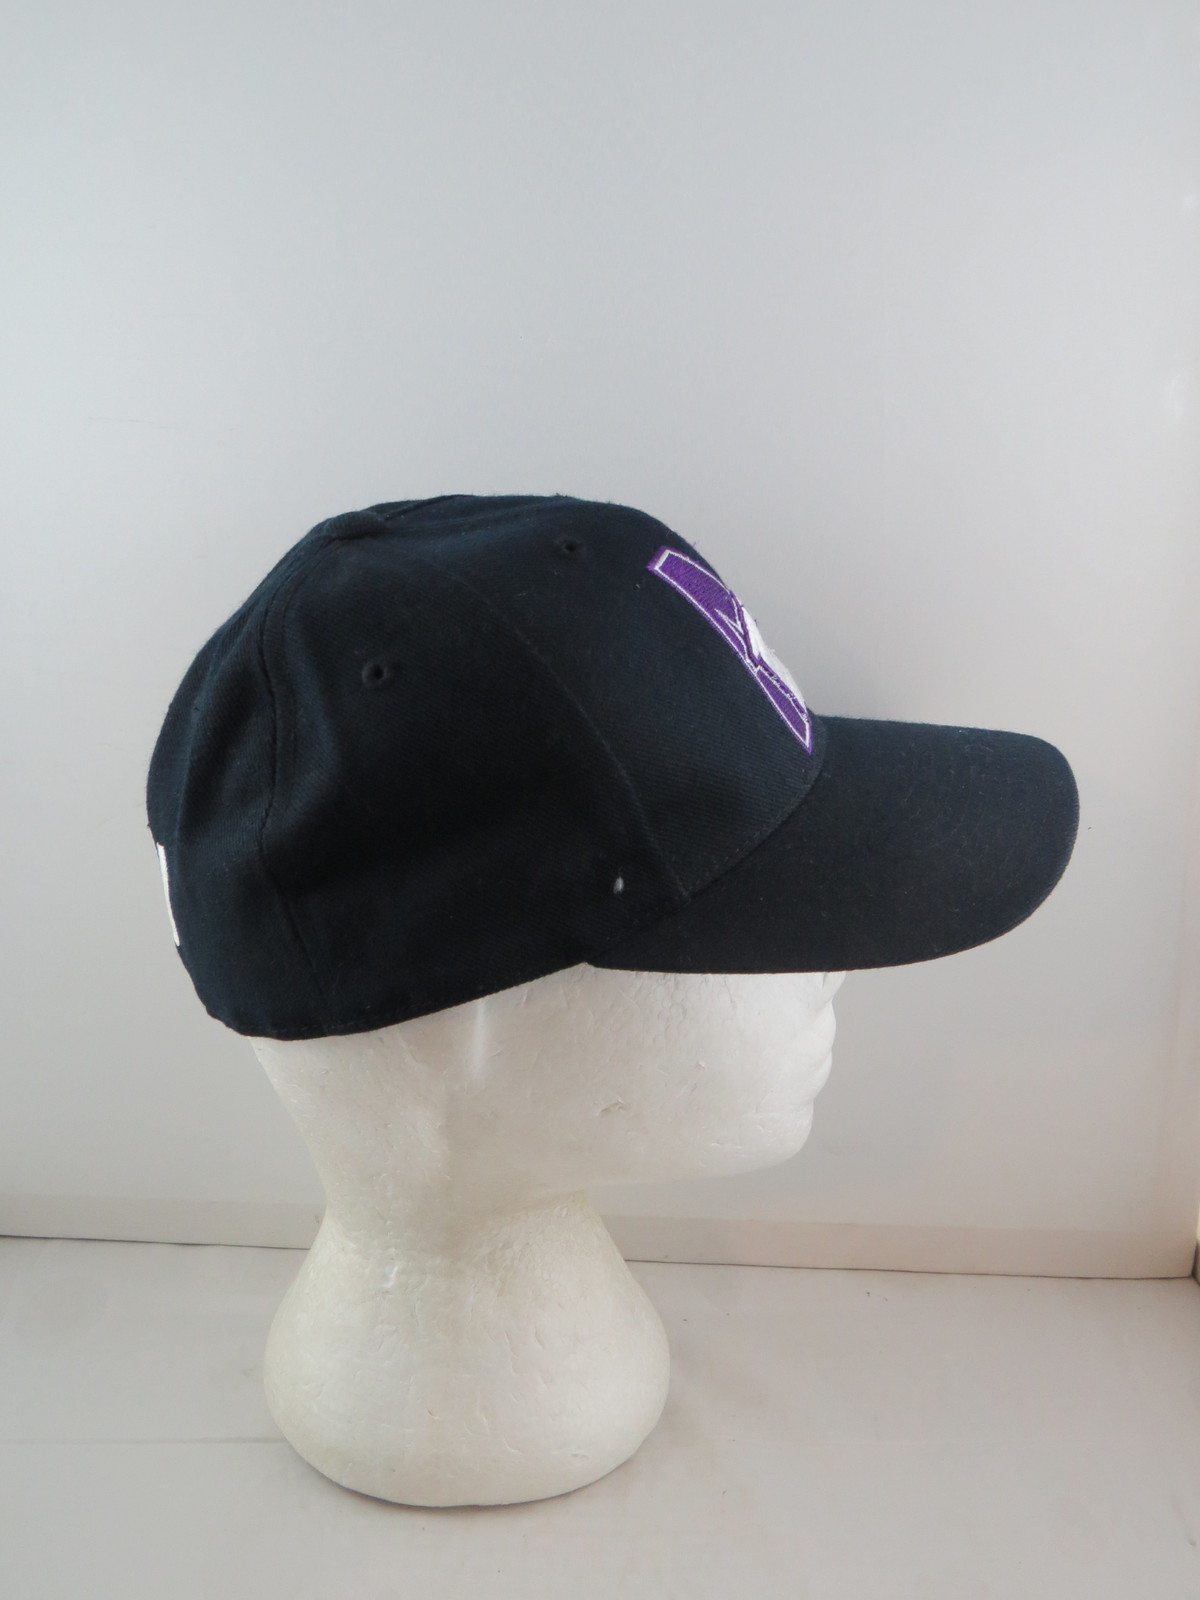 Northwestern Wildcats Hat - Team Logo by American Needle - Fitted 6 7/8